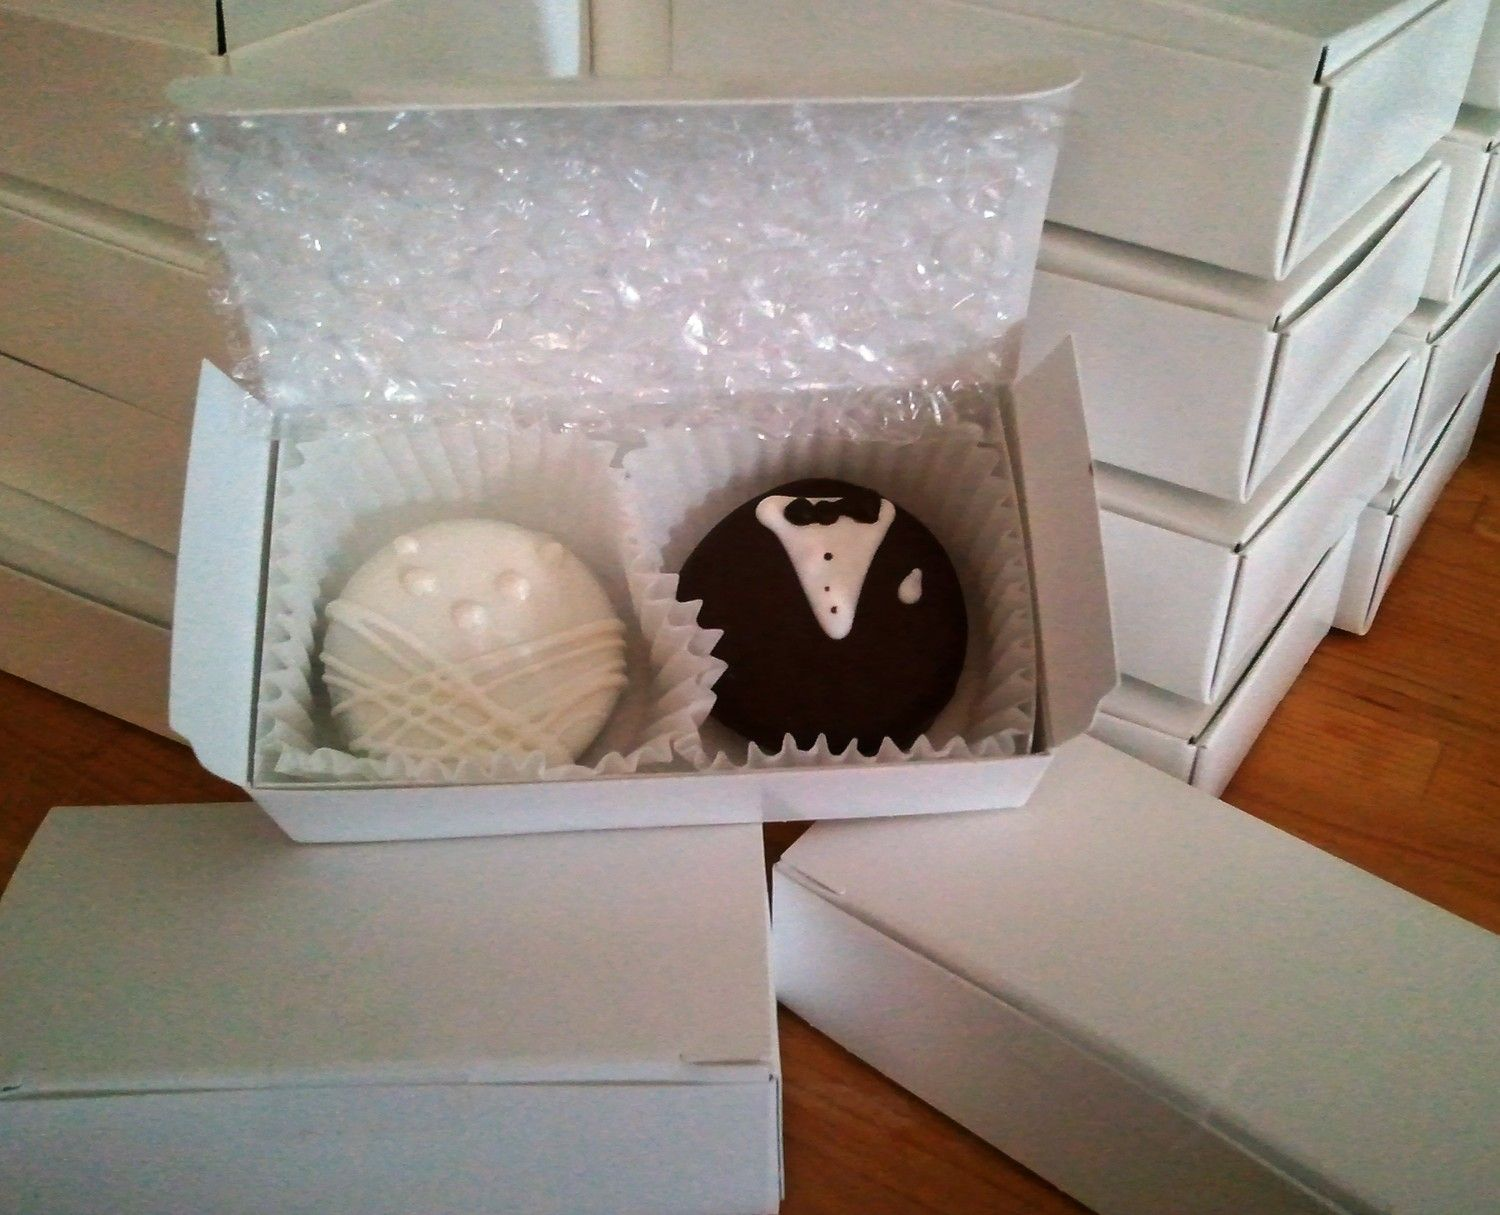 Oreo Chocolate Covered Cookie Bride And Groom Wedding Or Shower Favor In BOX